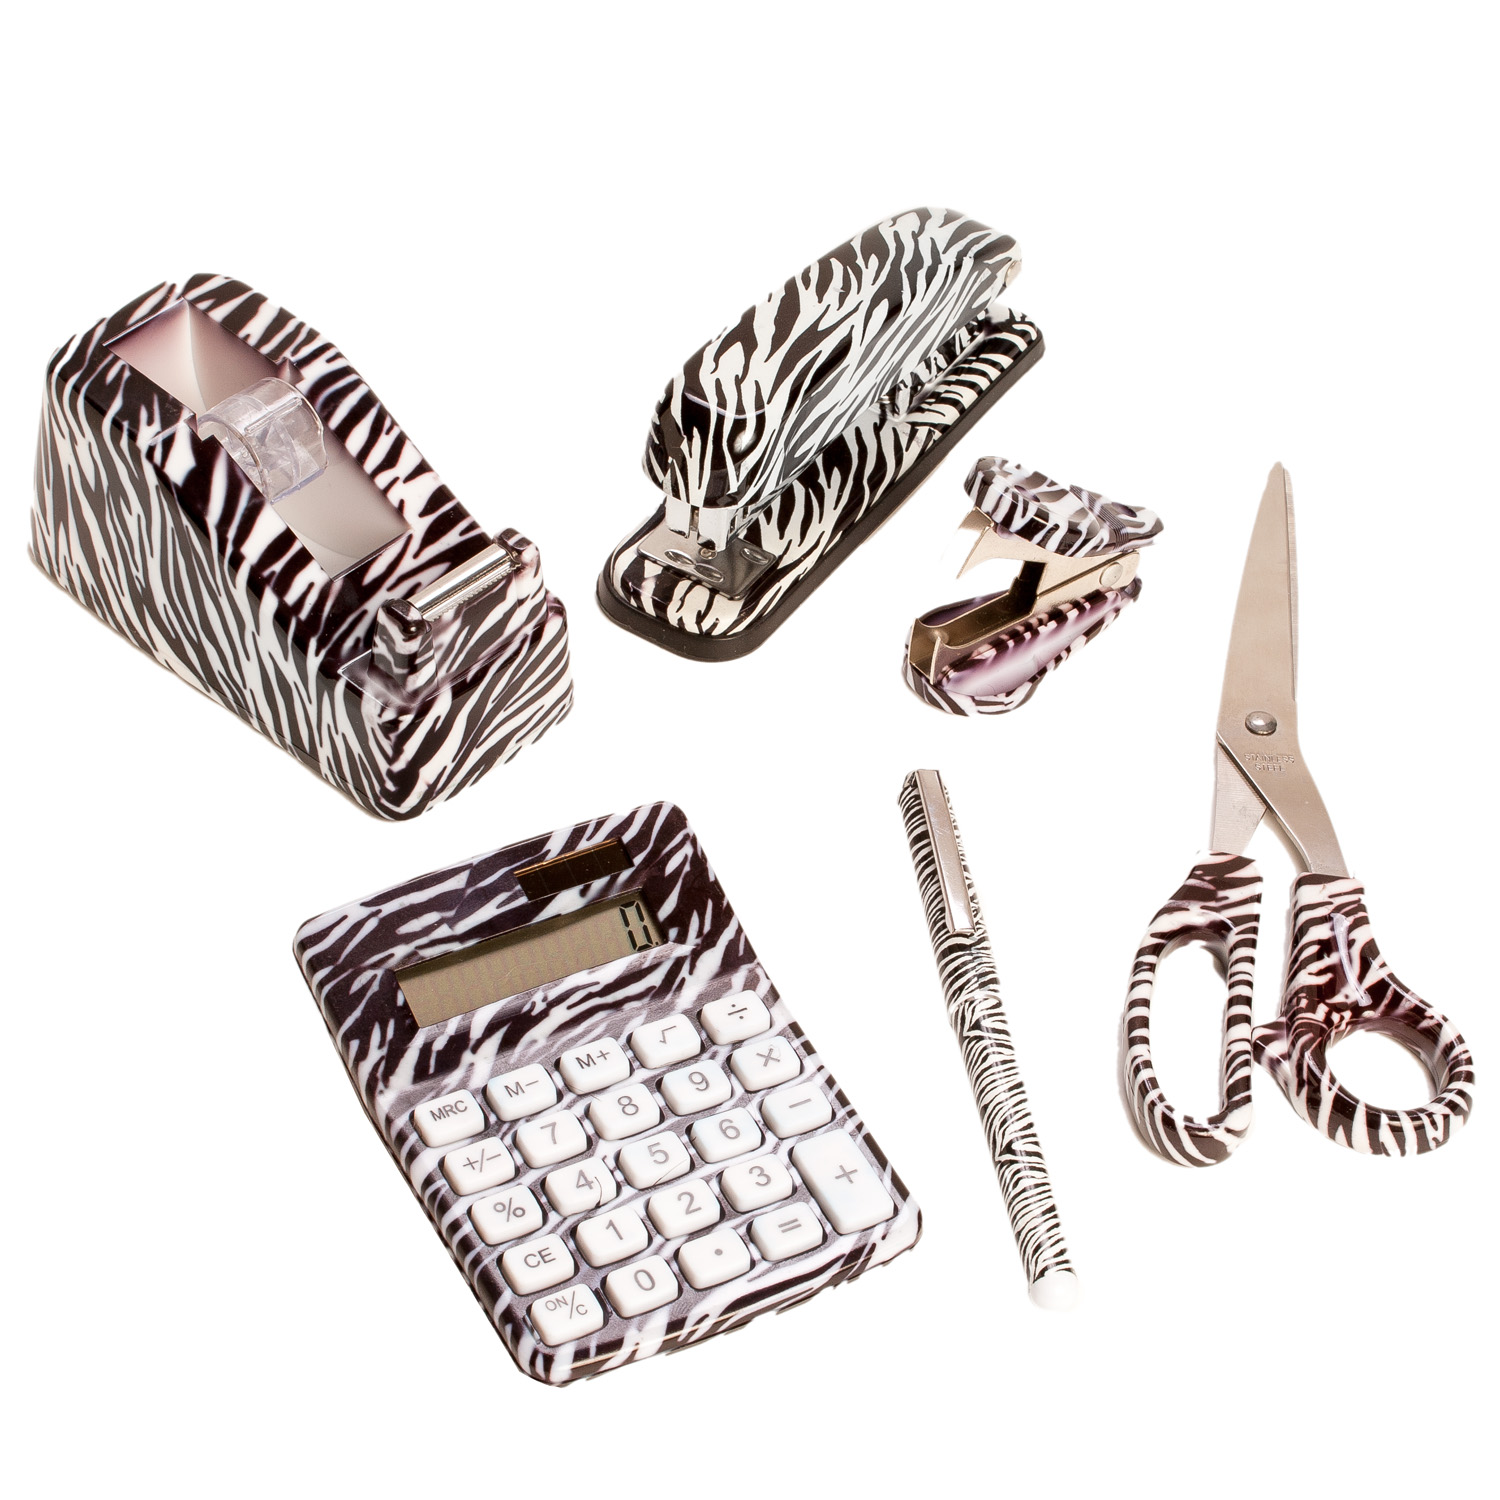 ... Leopard Office Supplies 6 Set Zebra Animal Office Stapler Remover  Scissors ...